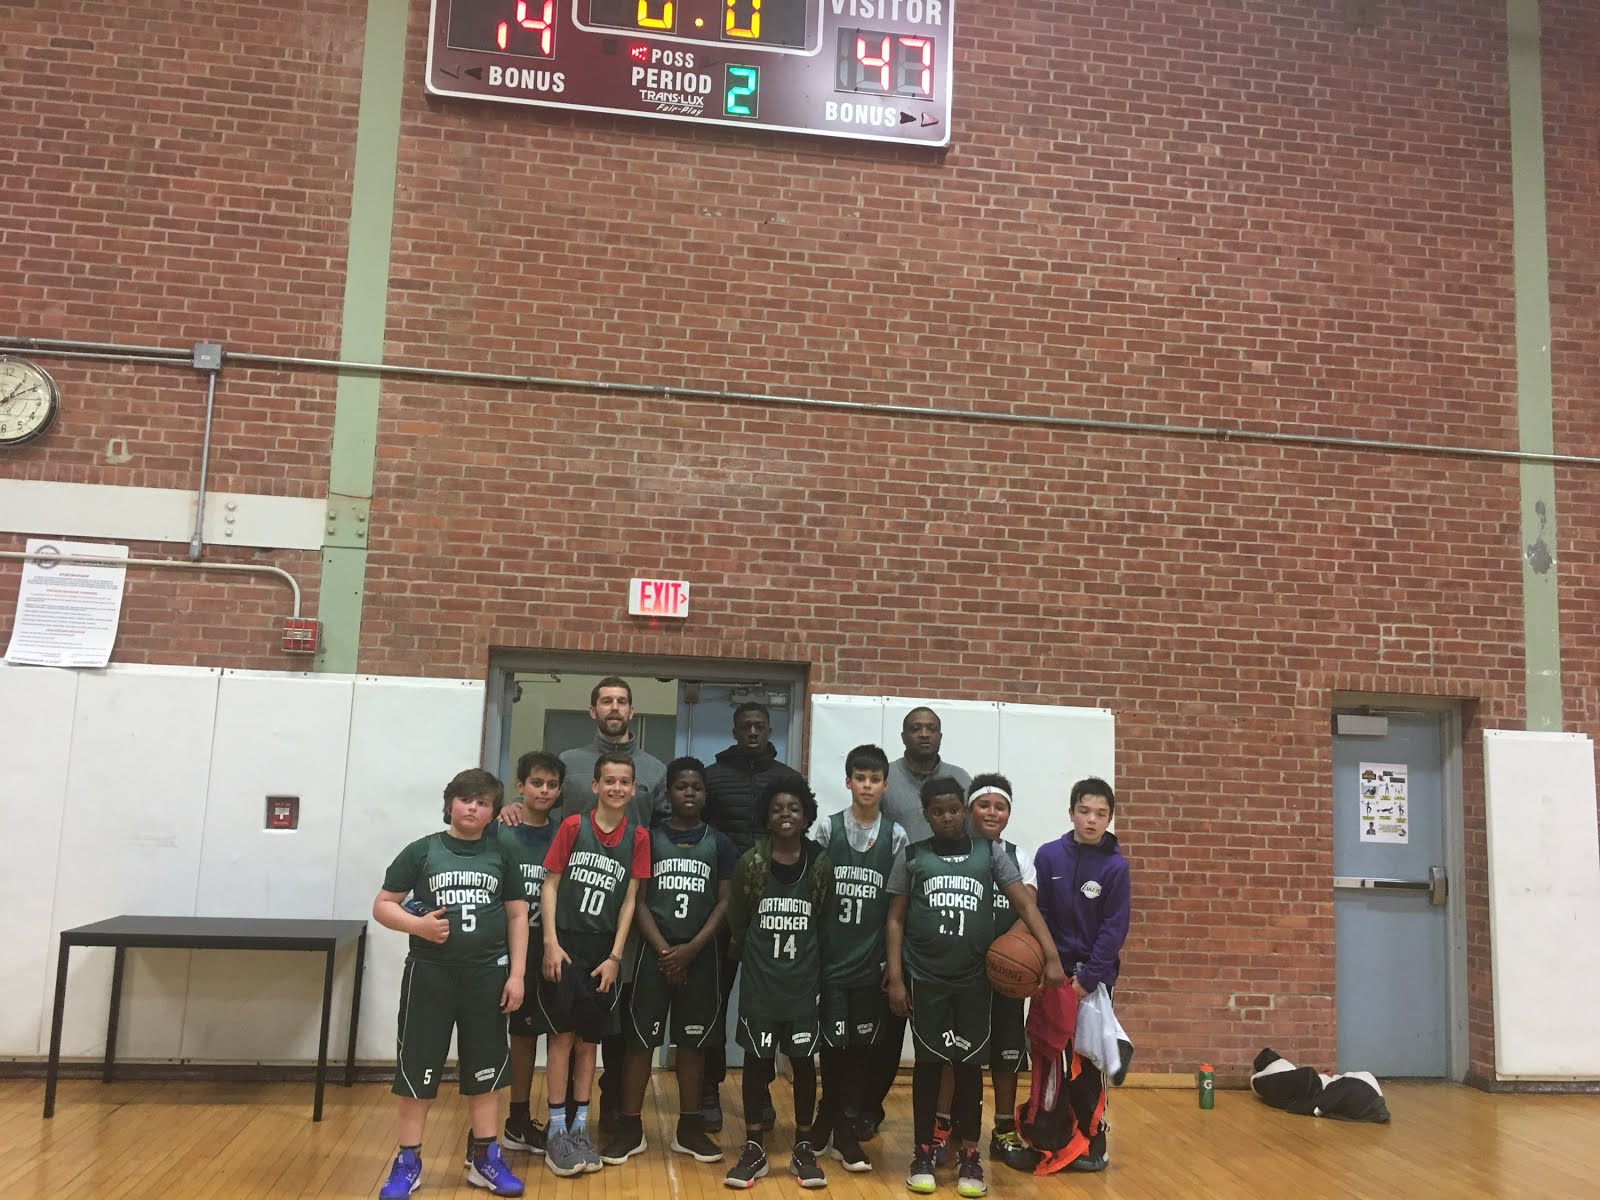 WHBA Grades 5-6 Team in City League, 2019-20